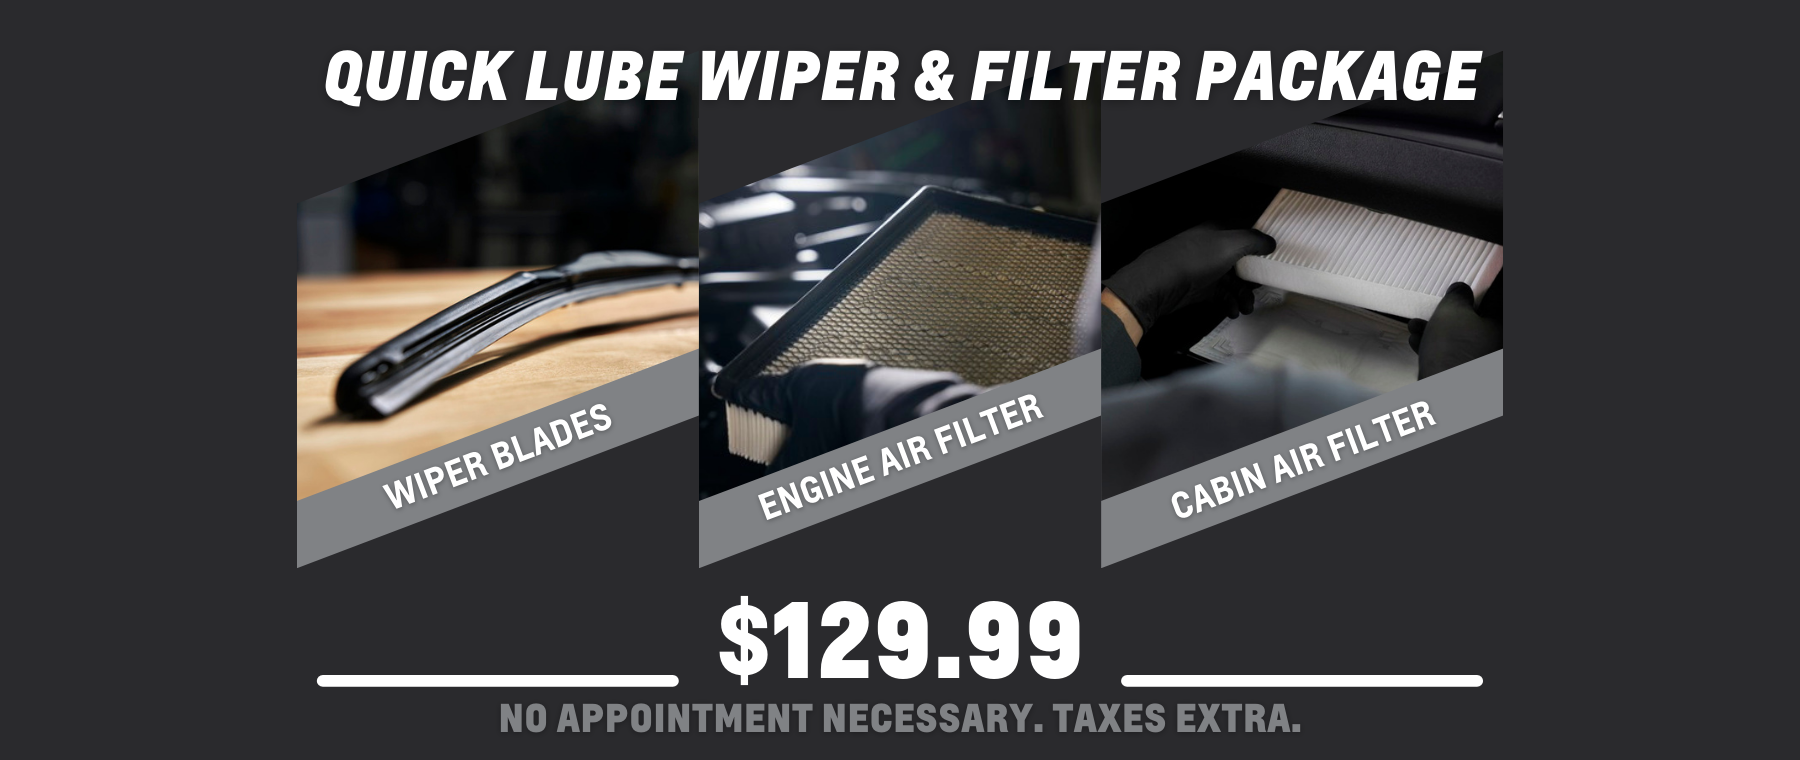 Copy of Quick Lube – Wiper & Filter Package